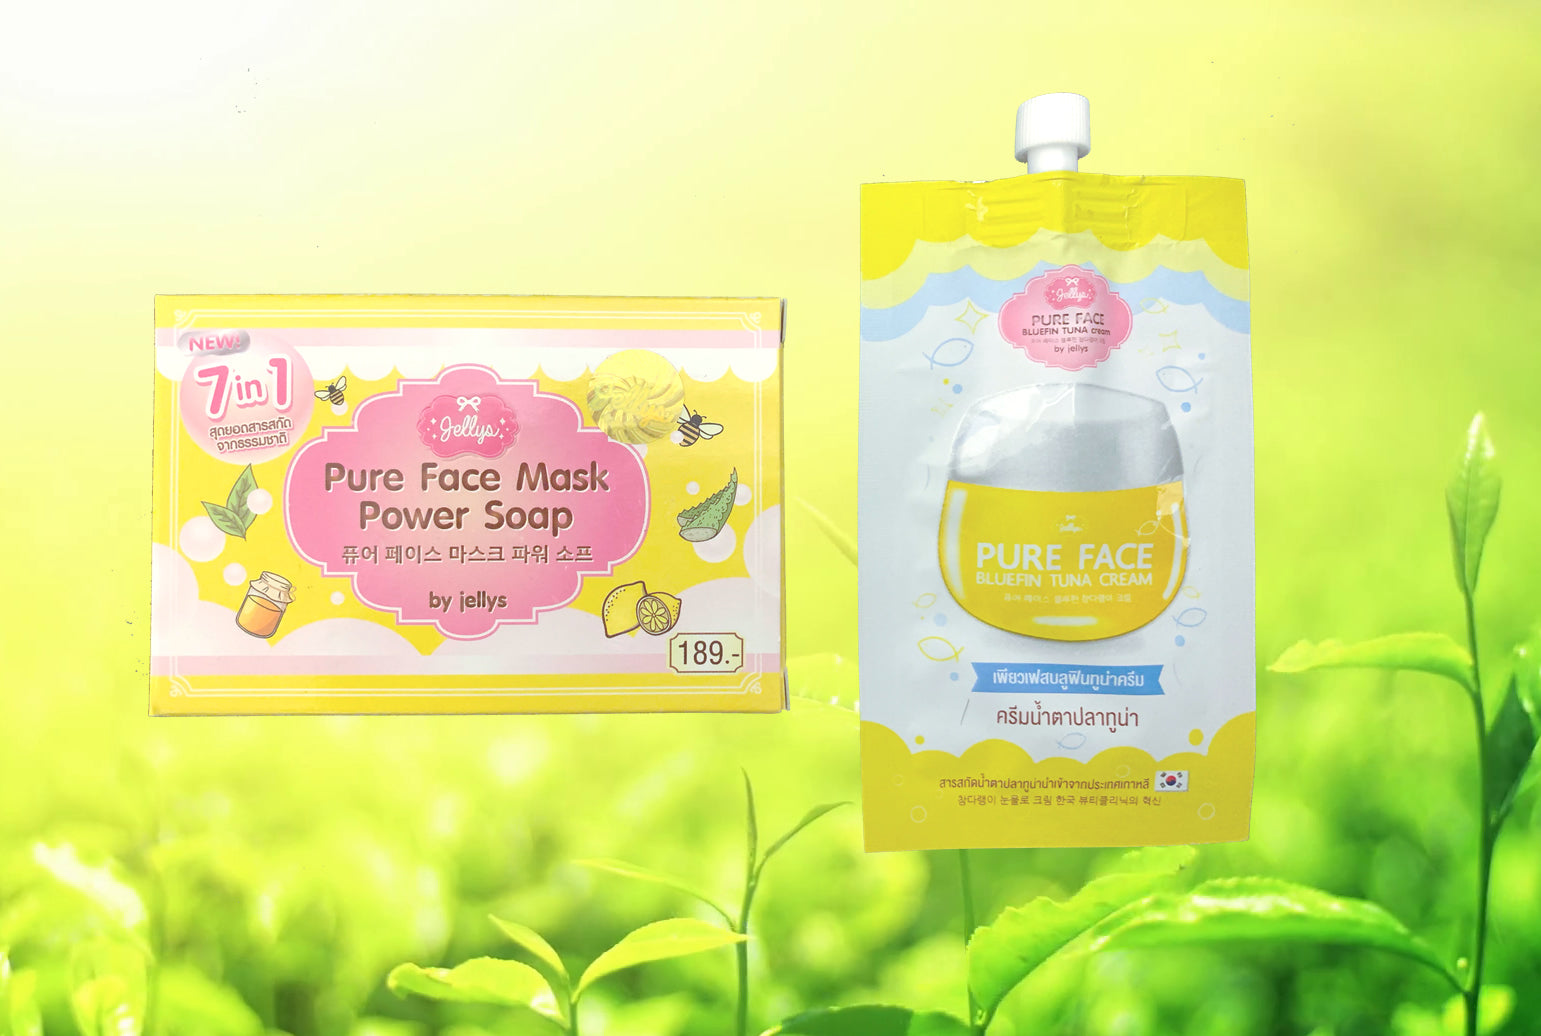 Pure Face Y Bluefin Tuna Pilaten Sonora Jellys Mask Power Soap